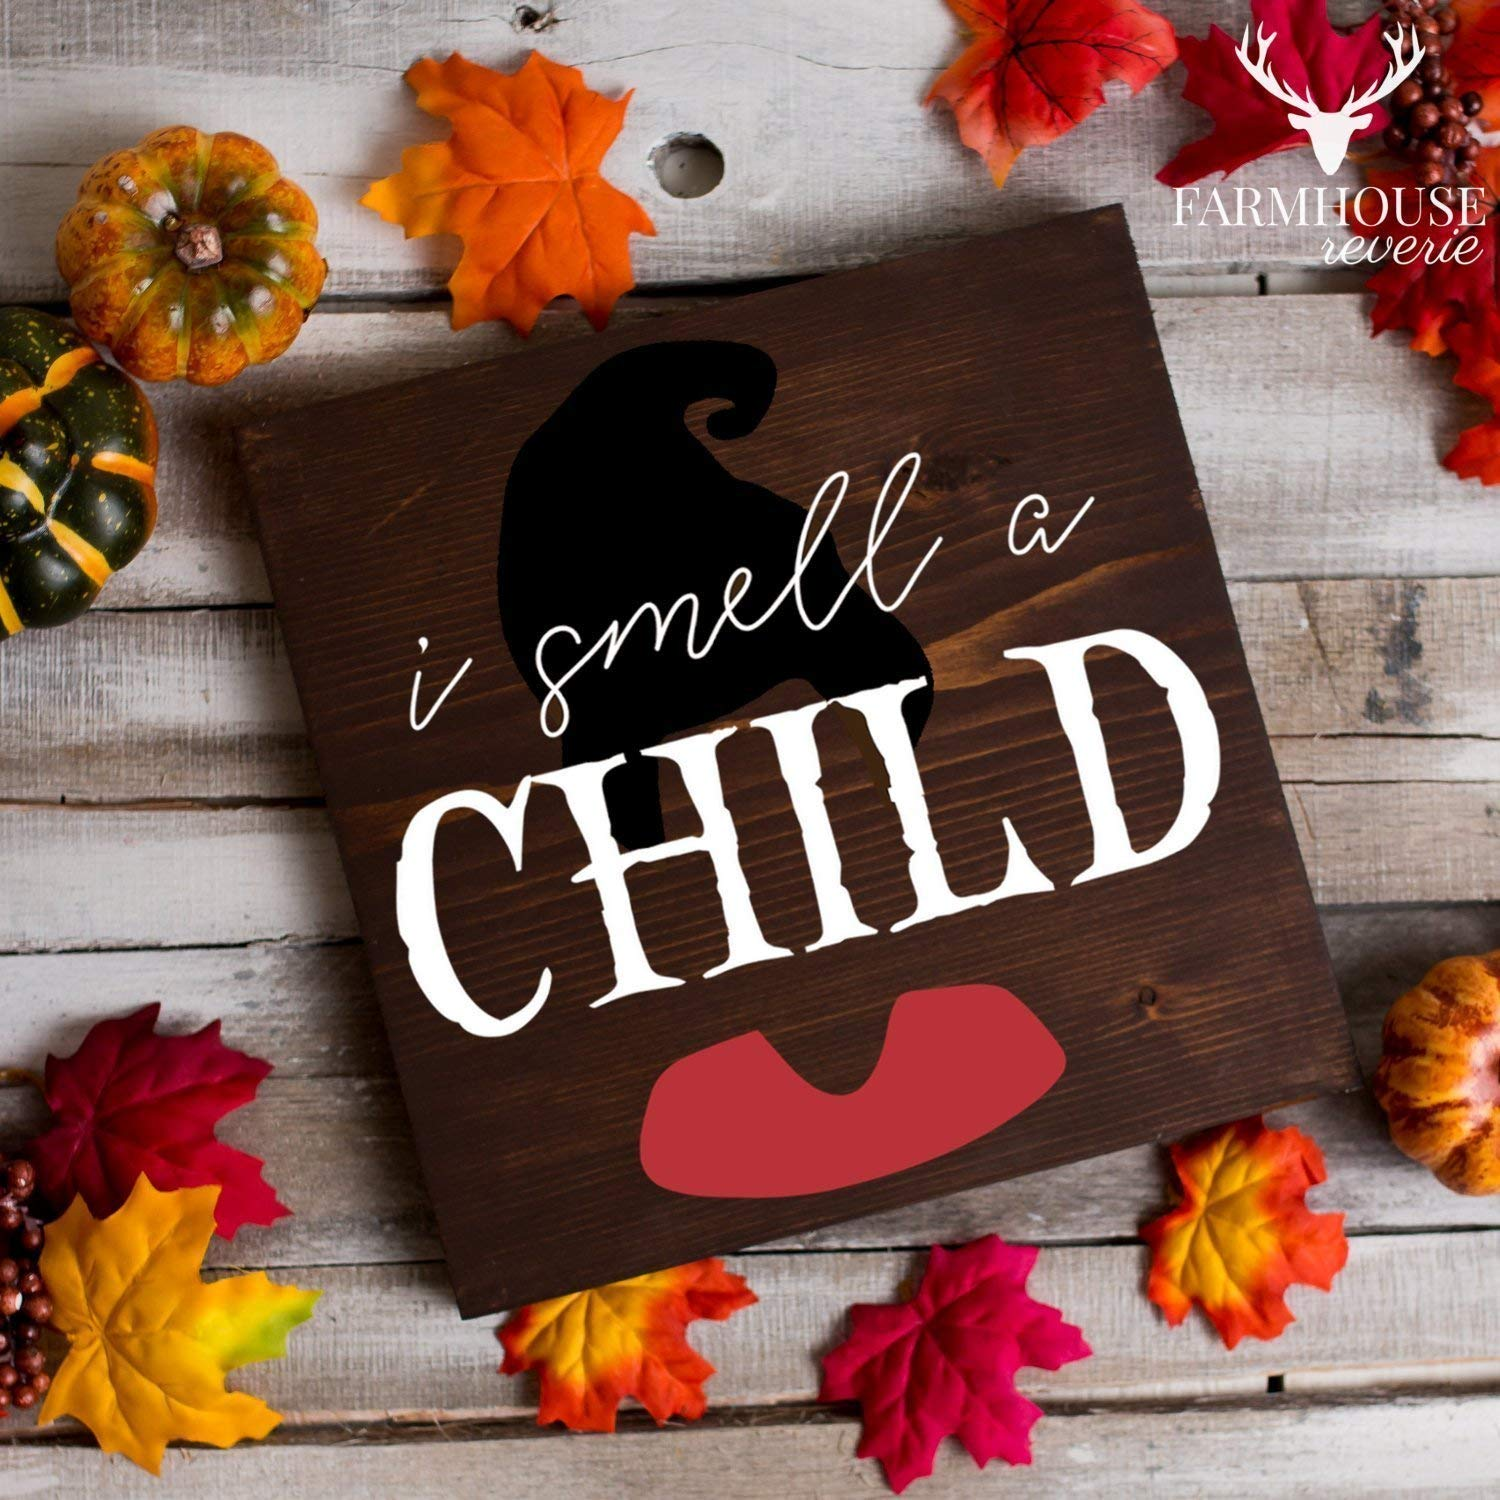 Mary Sanderson Quote Sign | I Smell A Child Sign | Hocus Pocus Halloween Sign | Fall Rustic Sign | Farmhouse Fall Decor | Farmhouse Style | Country Fall Decor | Vintage Fall Sign